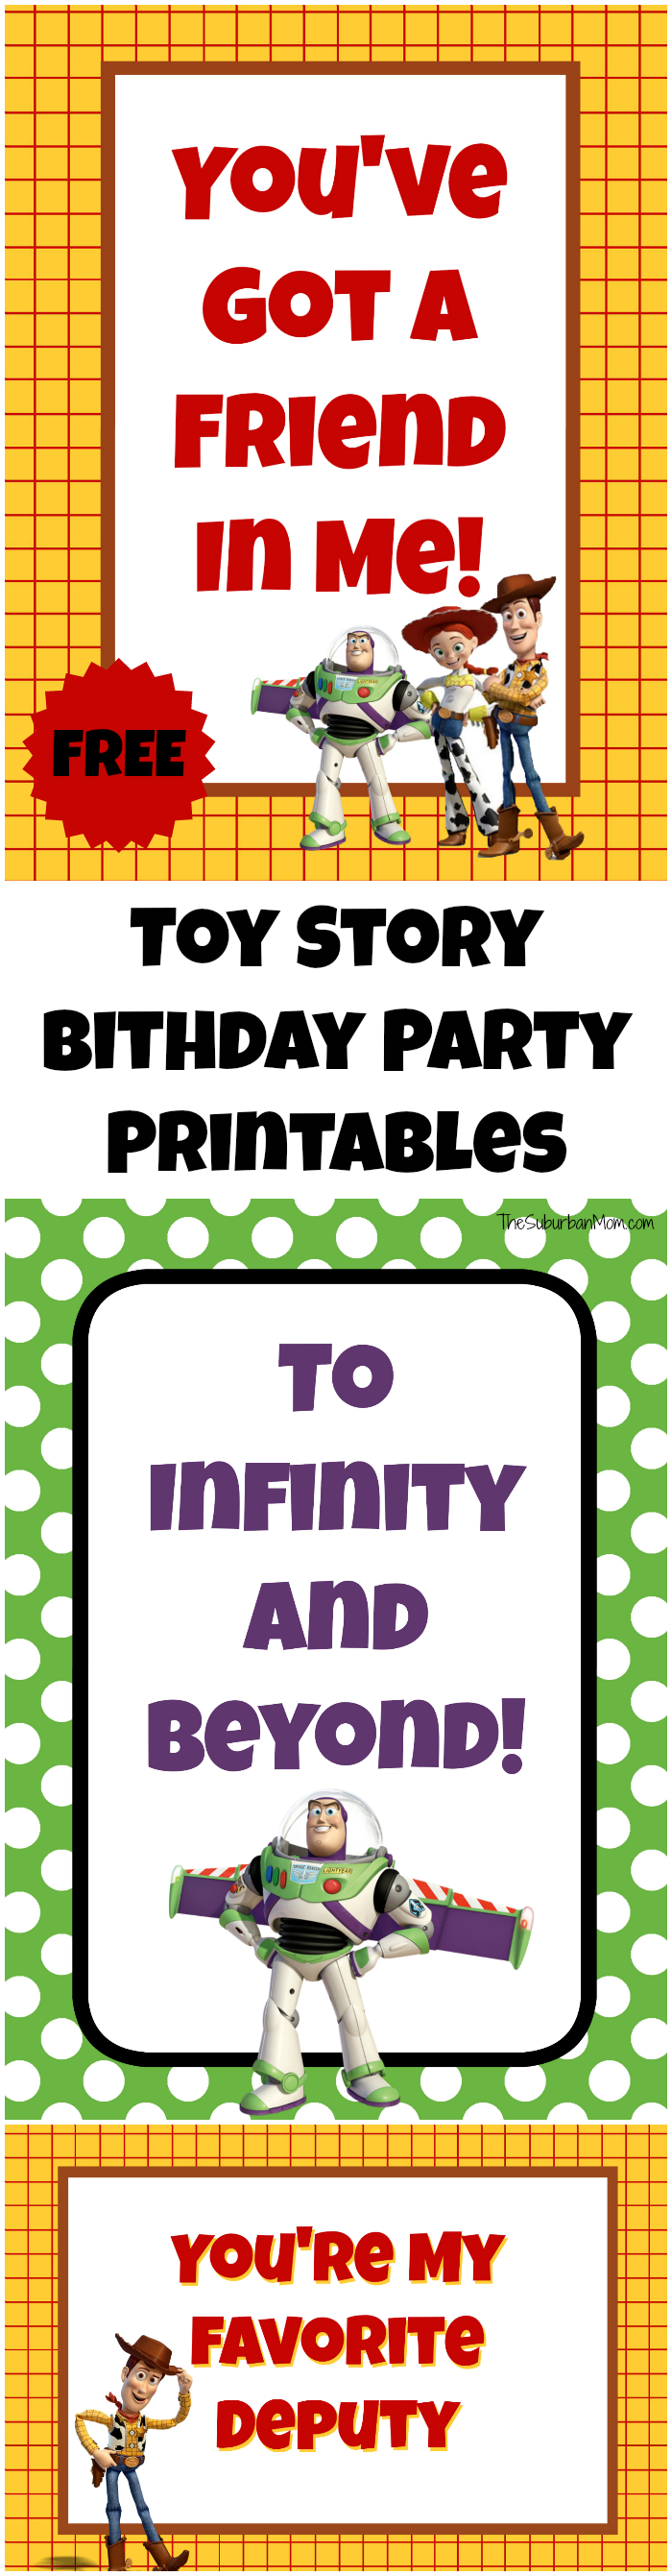 free toy story party printables the suburban mom. Black Bedroom Furniture Sets. Home Design Ideas